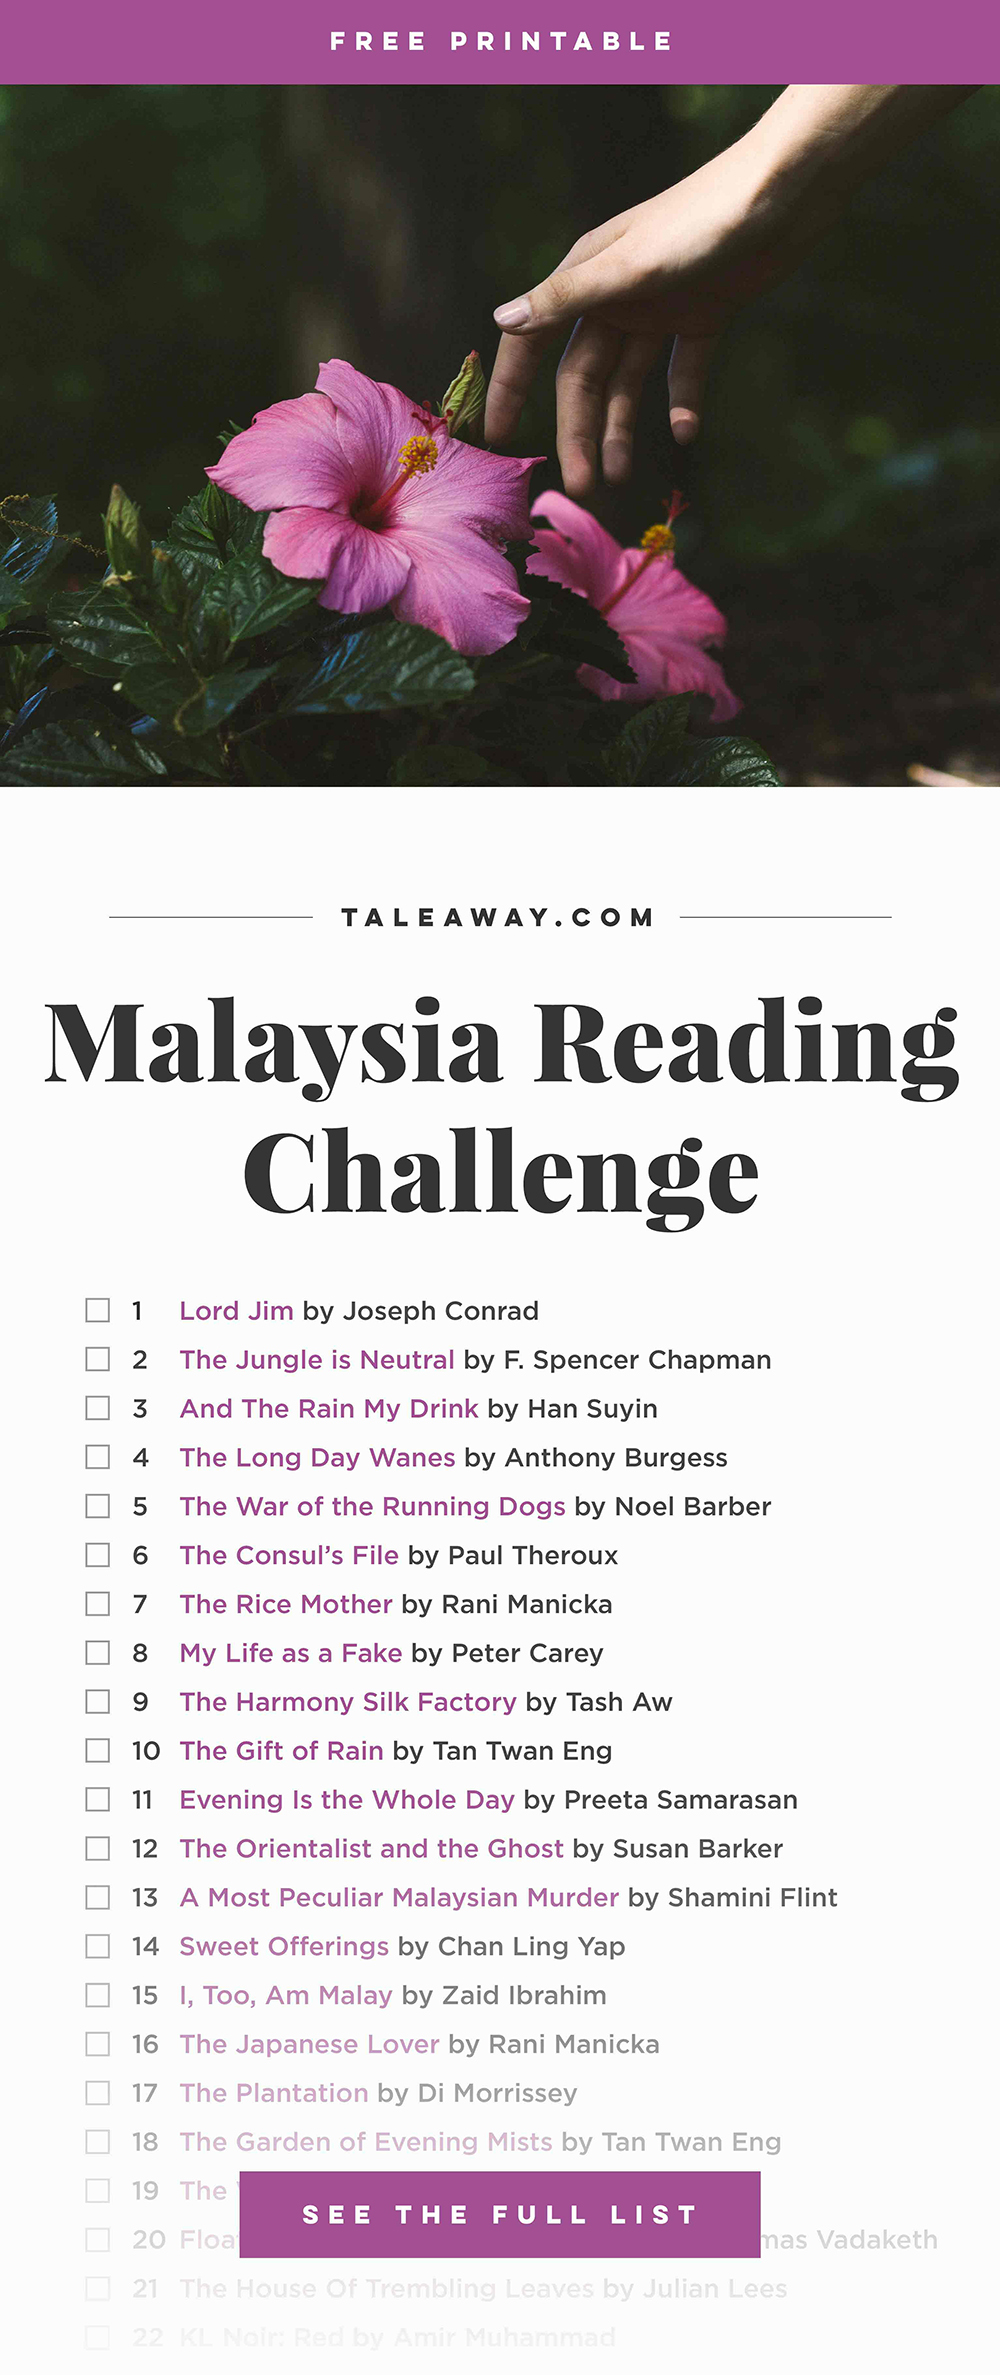 Malaysia Reading Challenge, Books Set In Malaysia - For more books visit www.taleway.com to find books set around the world. reading challenge, malaysian books, malaysia books, book challenge, books you must read, books from around the world, world books, books and travel, travel reading list, reading list, books around the world, books to read, malaysia books novels, malaysia travel